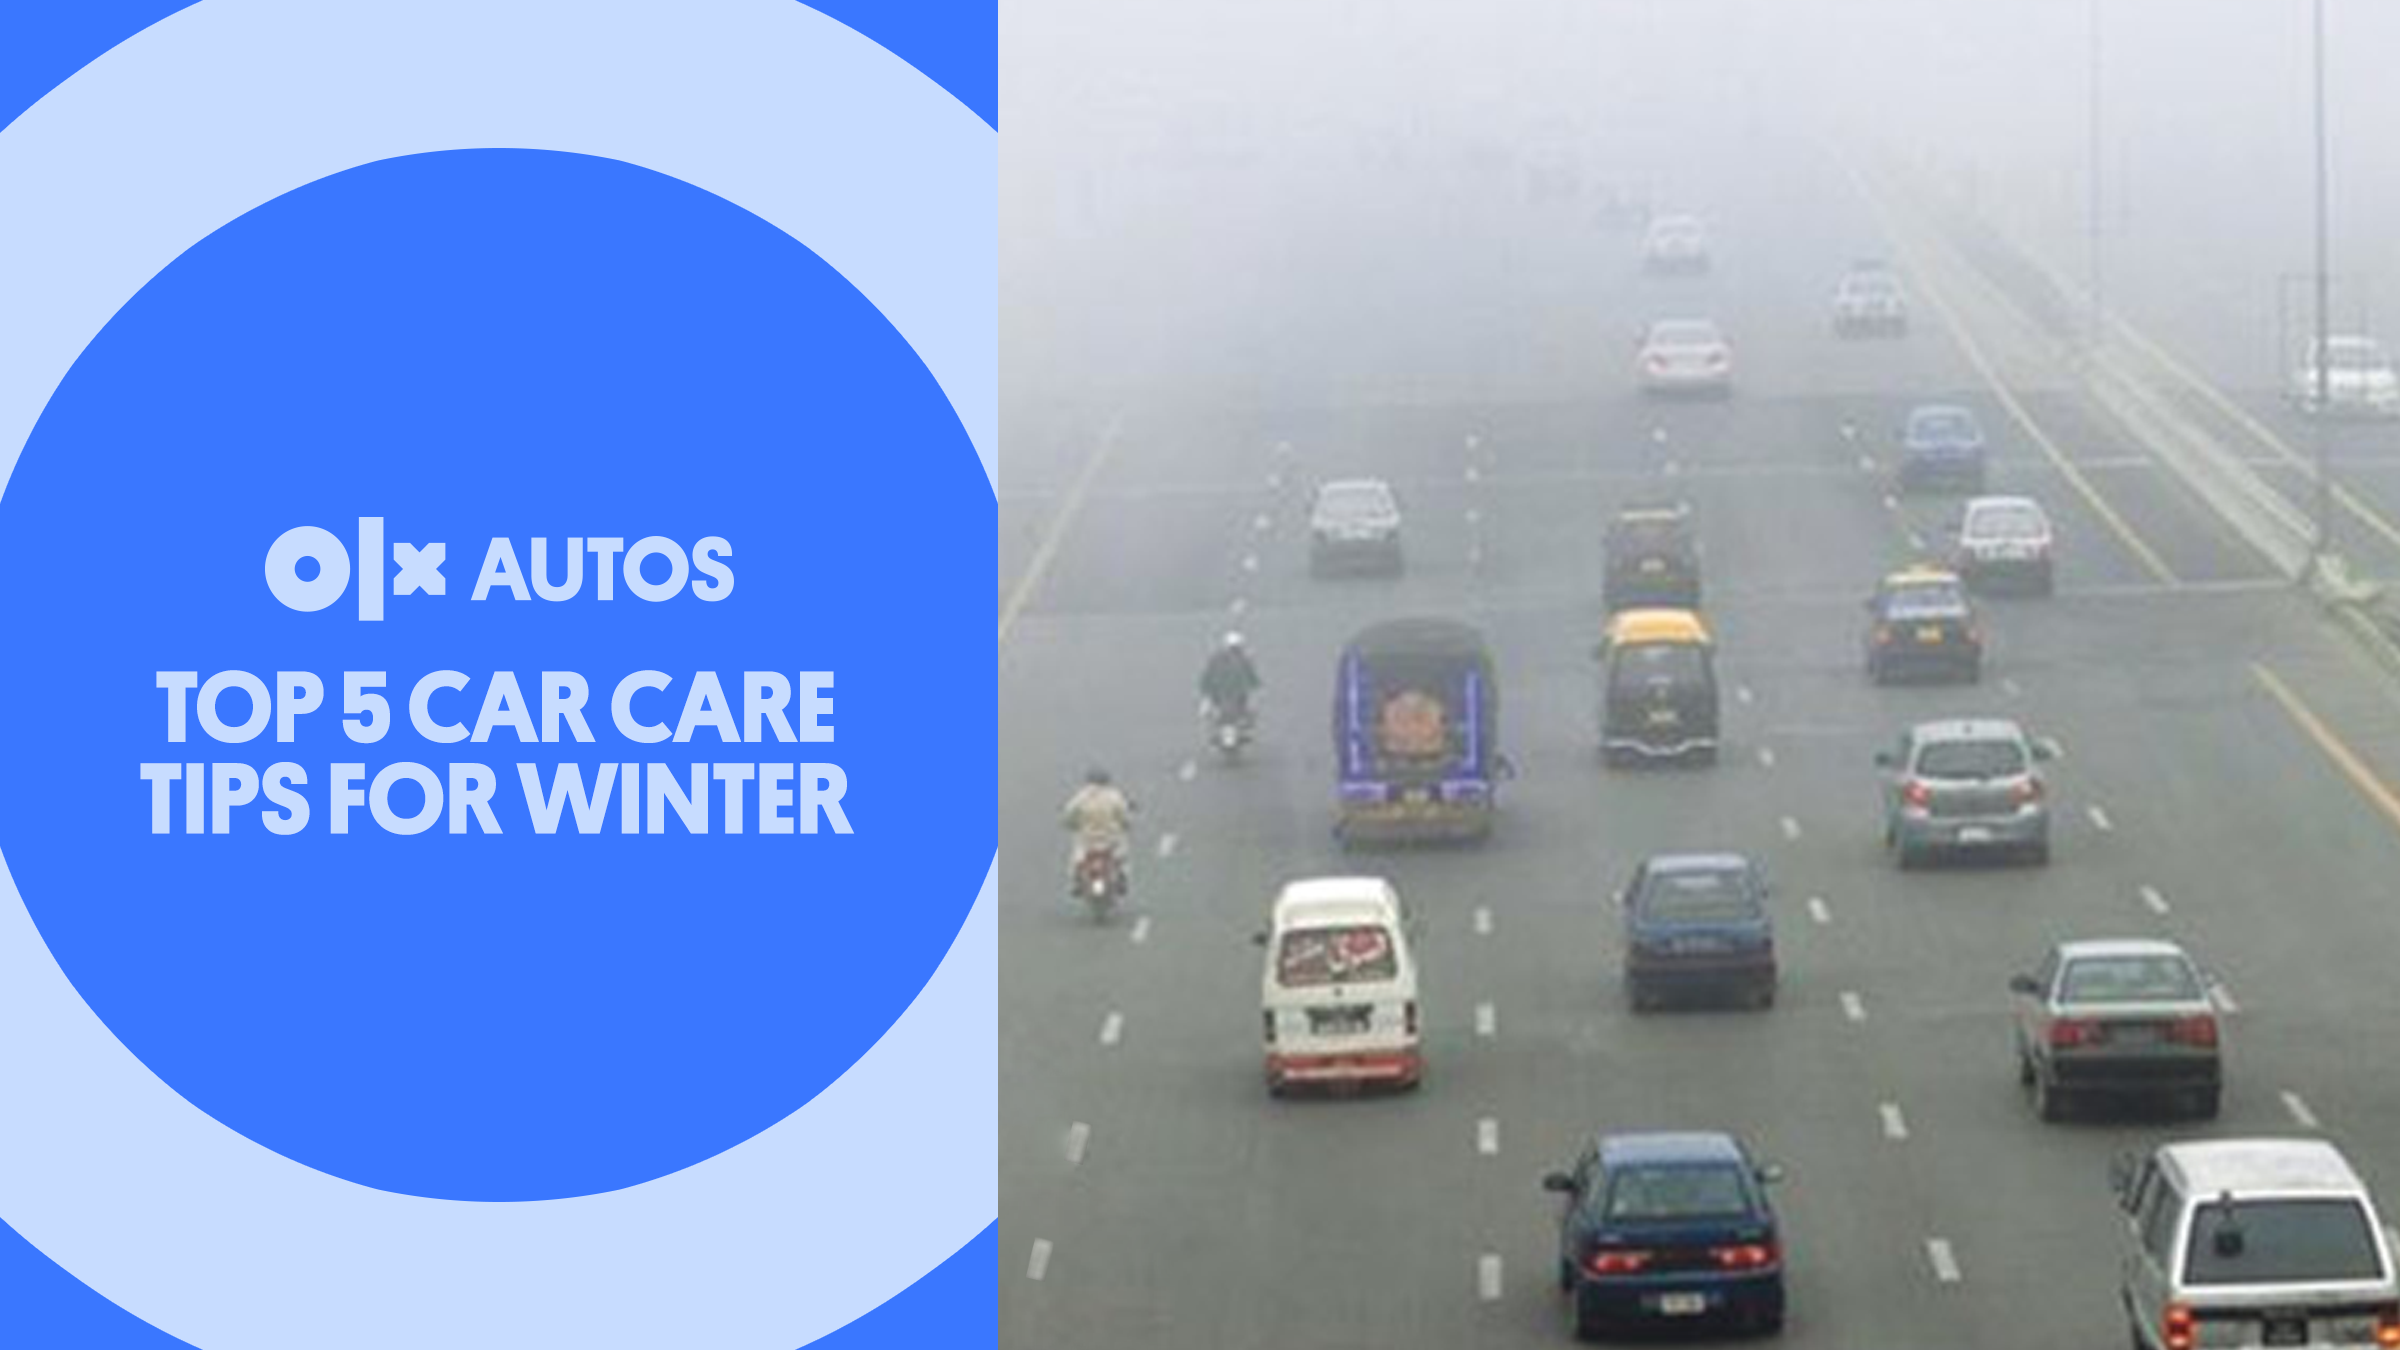 Top 5 Car Care Tips for Winter